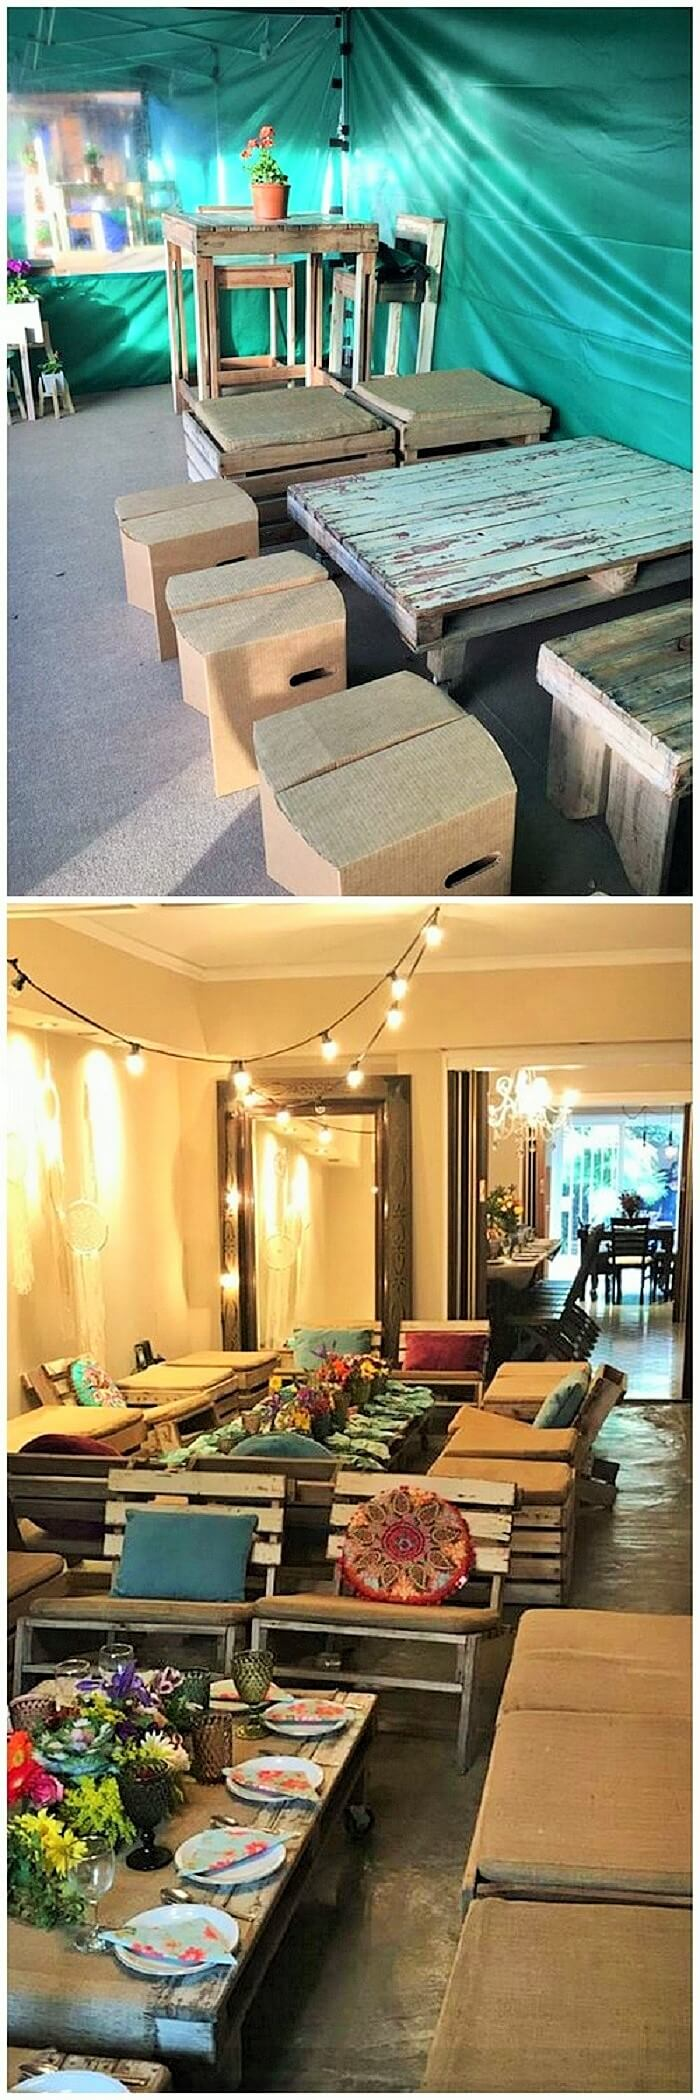 Intoor-DIY-Pallet-Sofa-Chair-Ideas